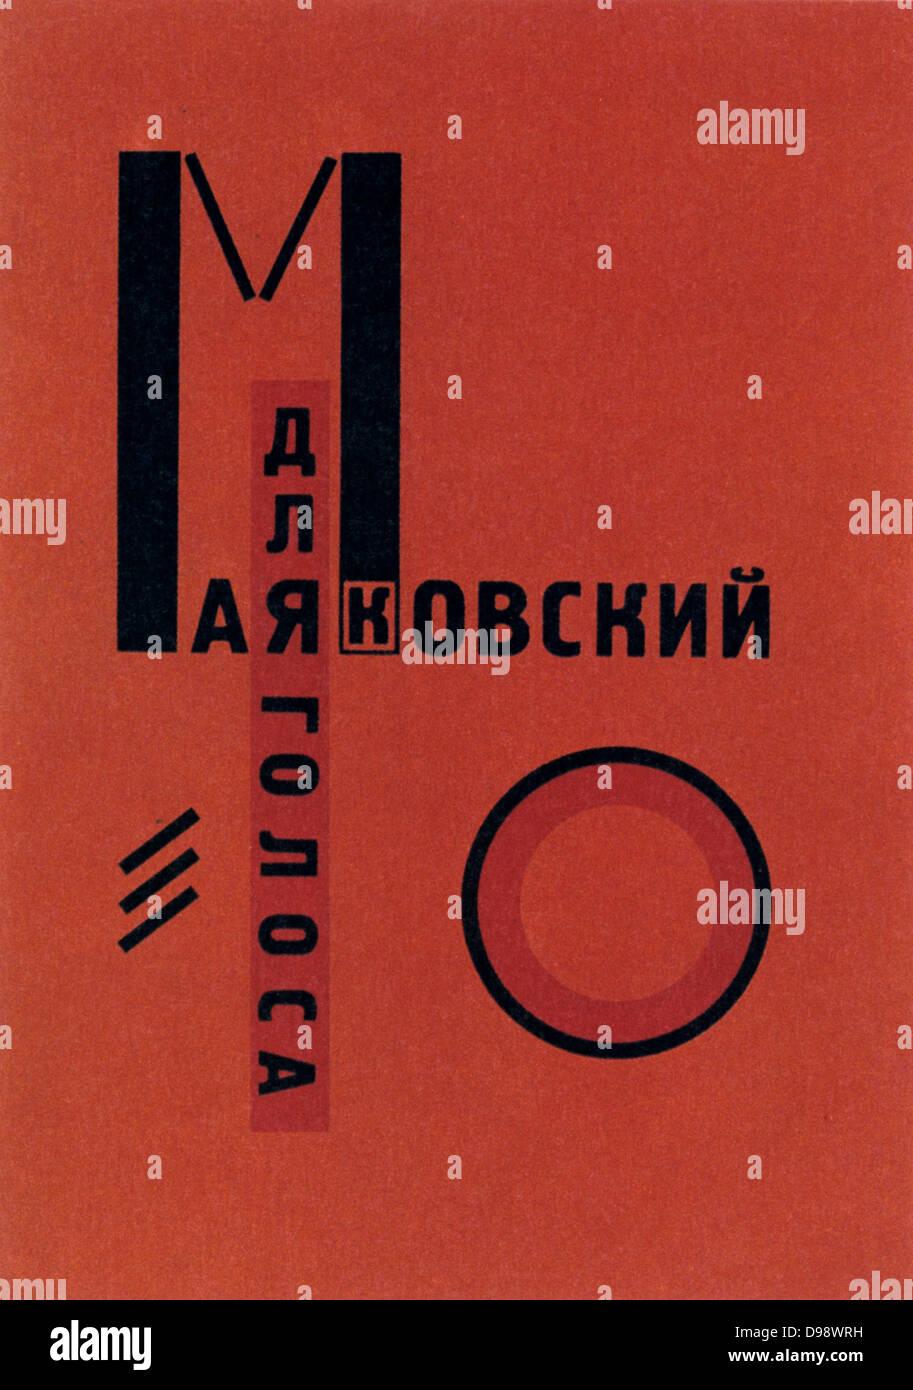 Design by Lazar Lissitzky for the cover of a book by the Vladimir Mayakovsky, 1923. Russia USSR Communism Communist - Stock Image